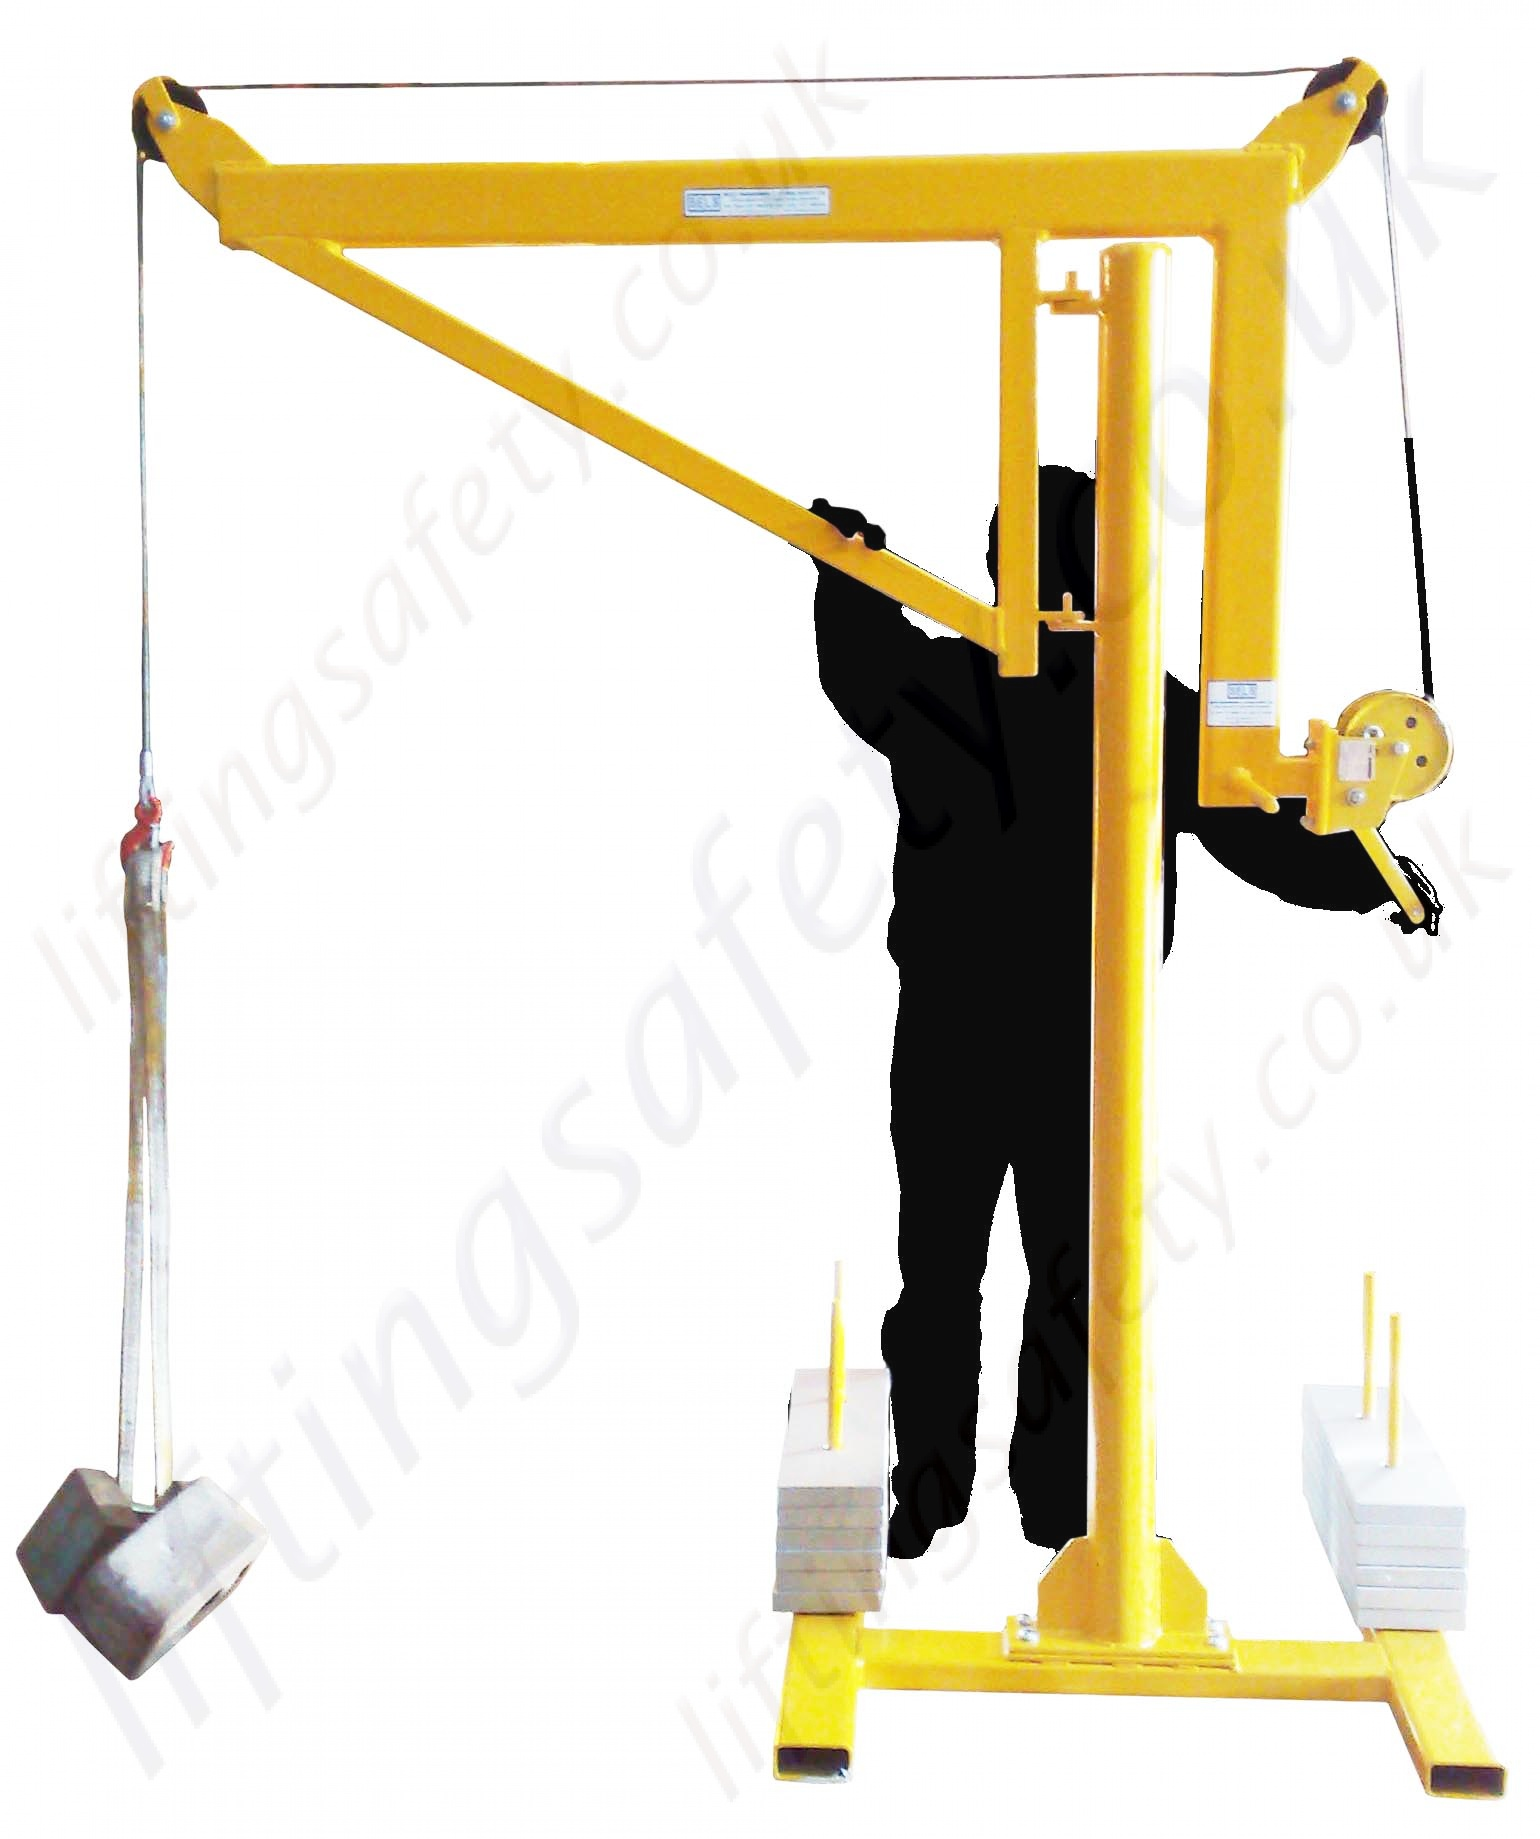 Swing Arm Hoist Mount : Portable counterbalance free standing davit arm swing